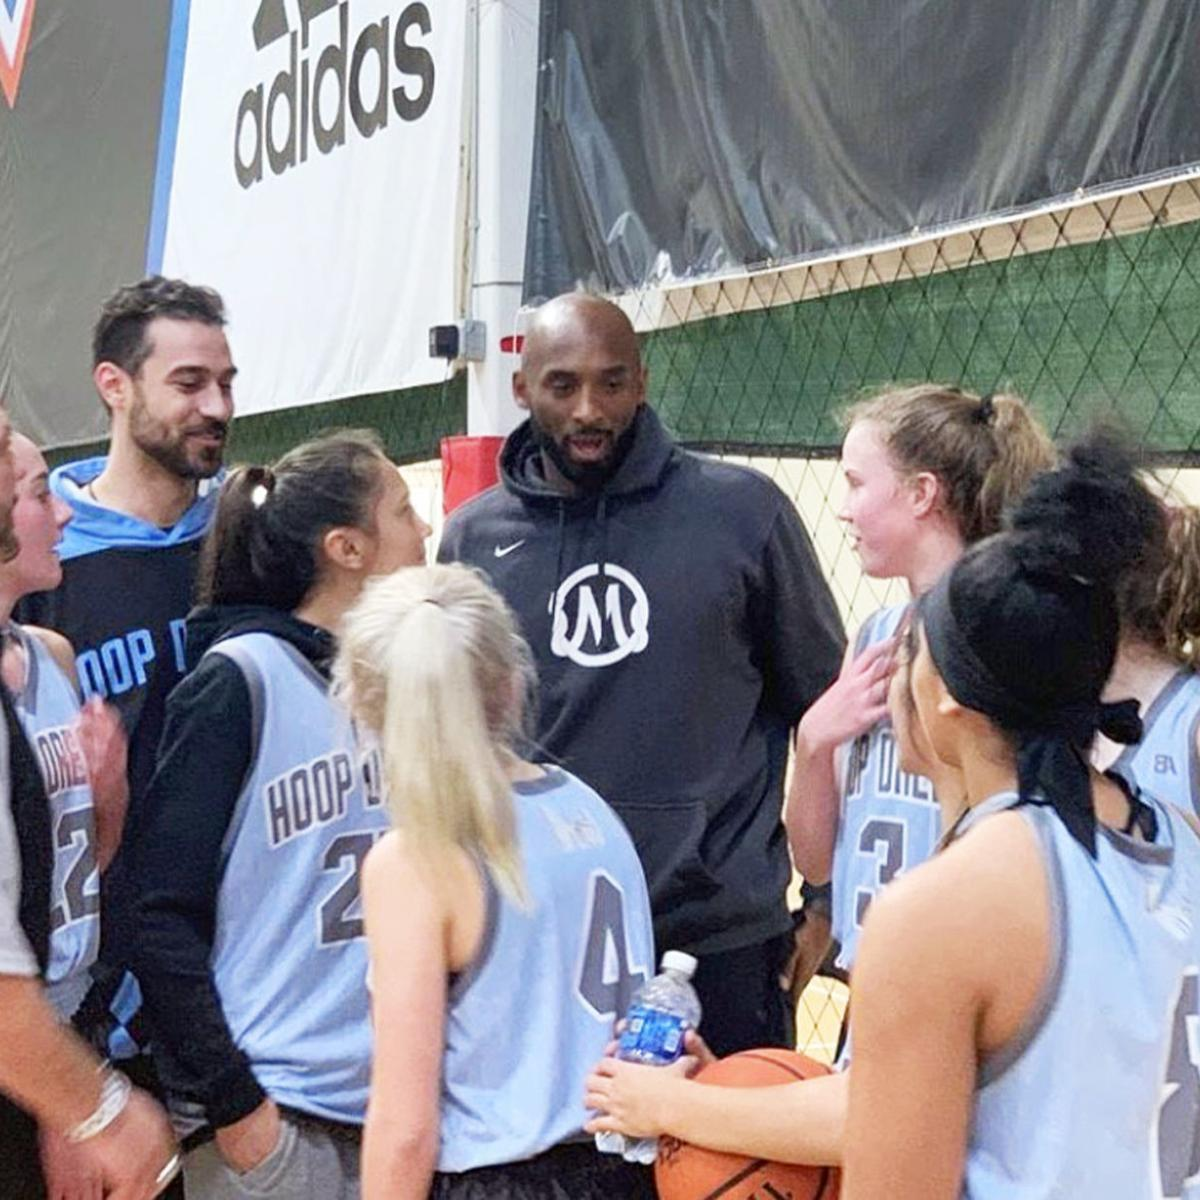 Boise club team embraces message delivered by Kobe Bryant